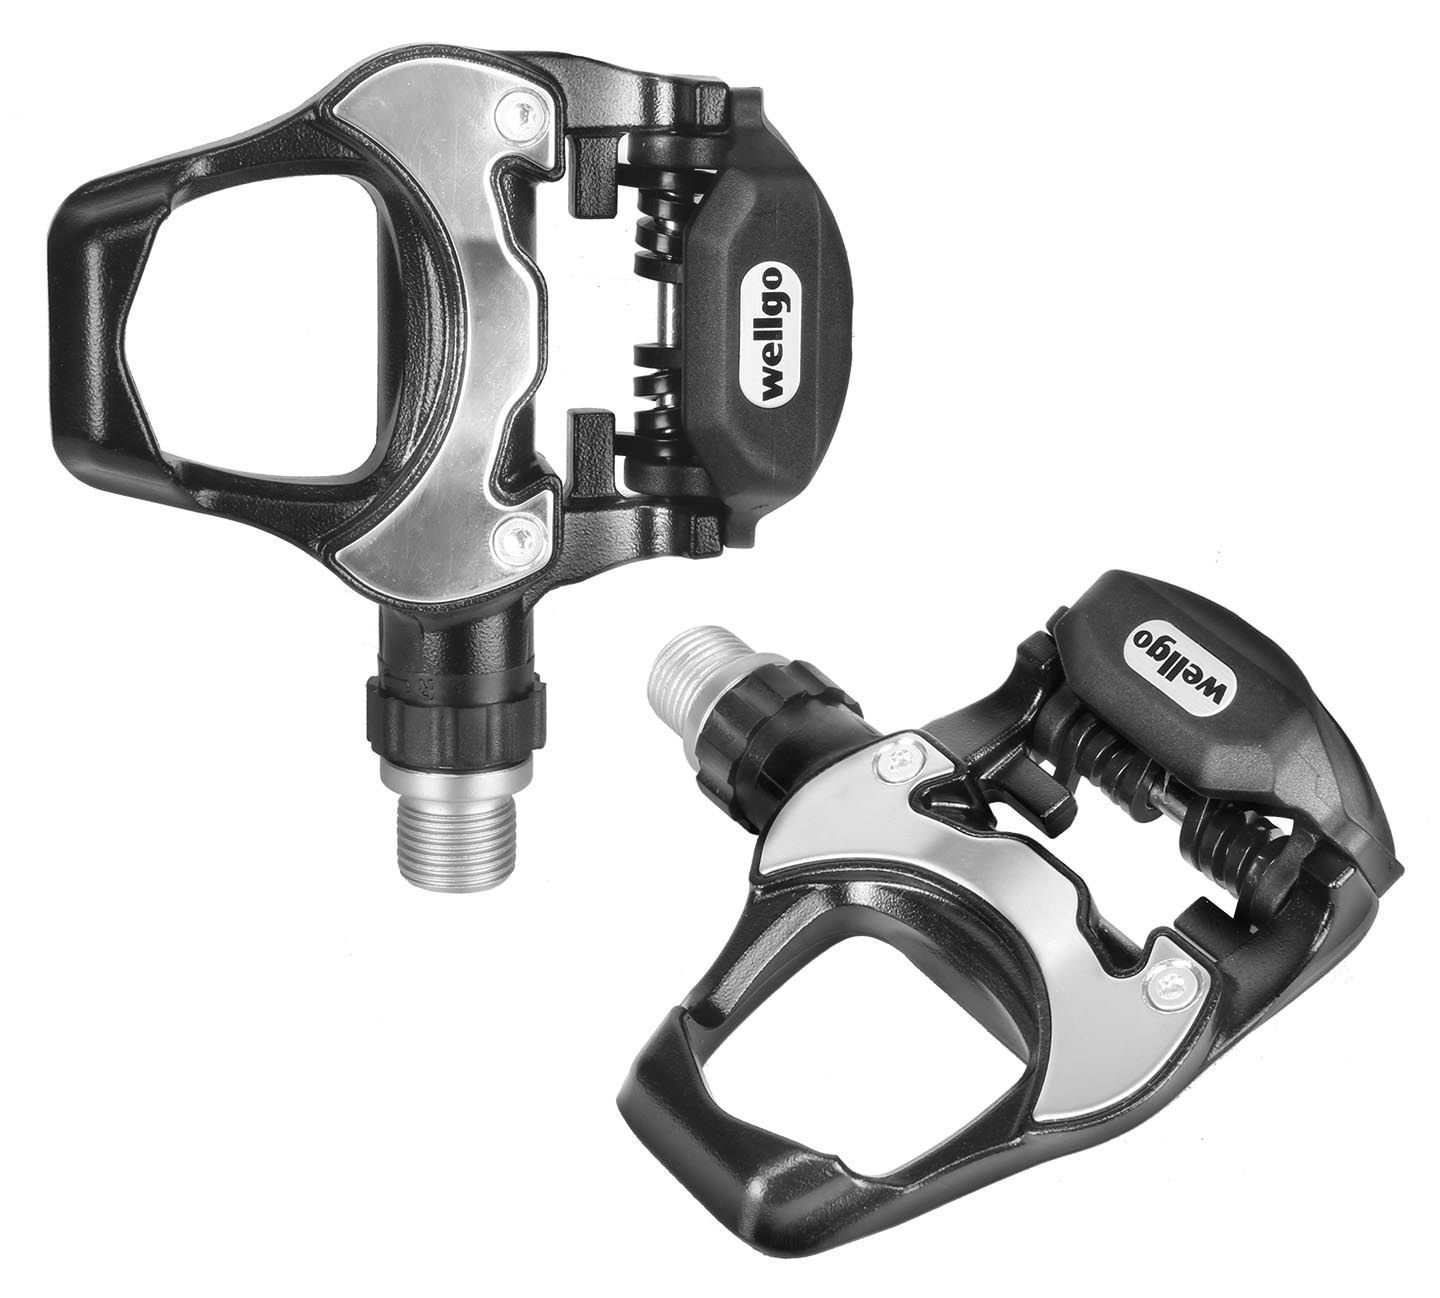 Wellgo R251 Look Keo Compatible Road Bike Pedals